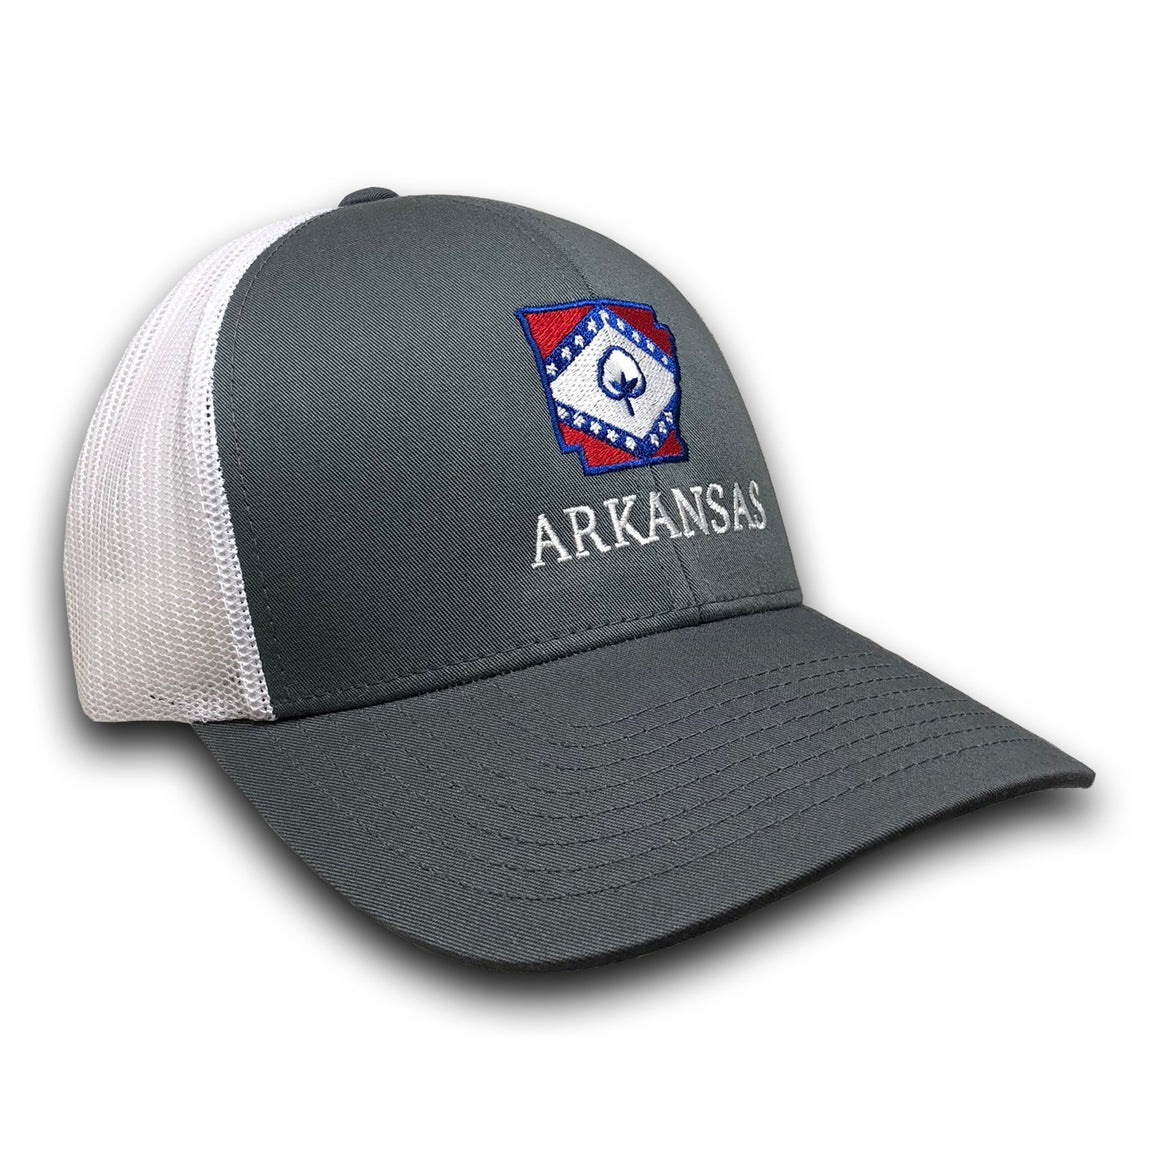 777ba0b3049 Arkansas - Arkansas Trucker Hats